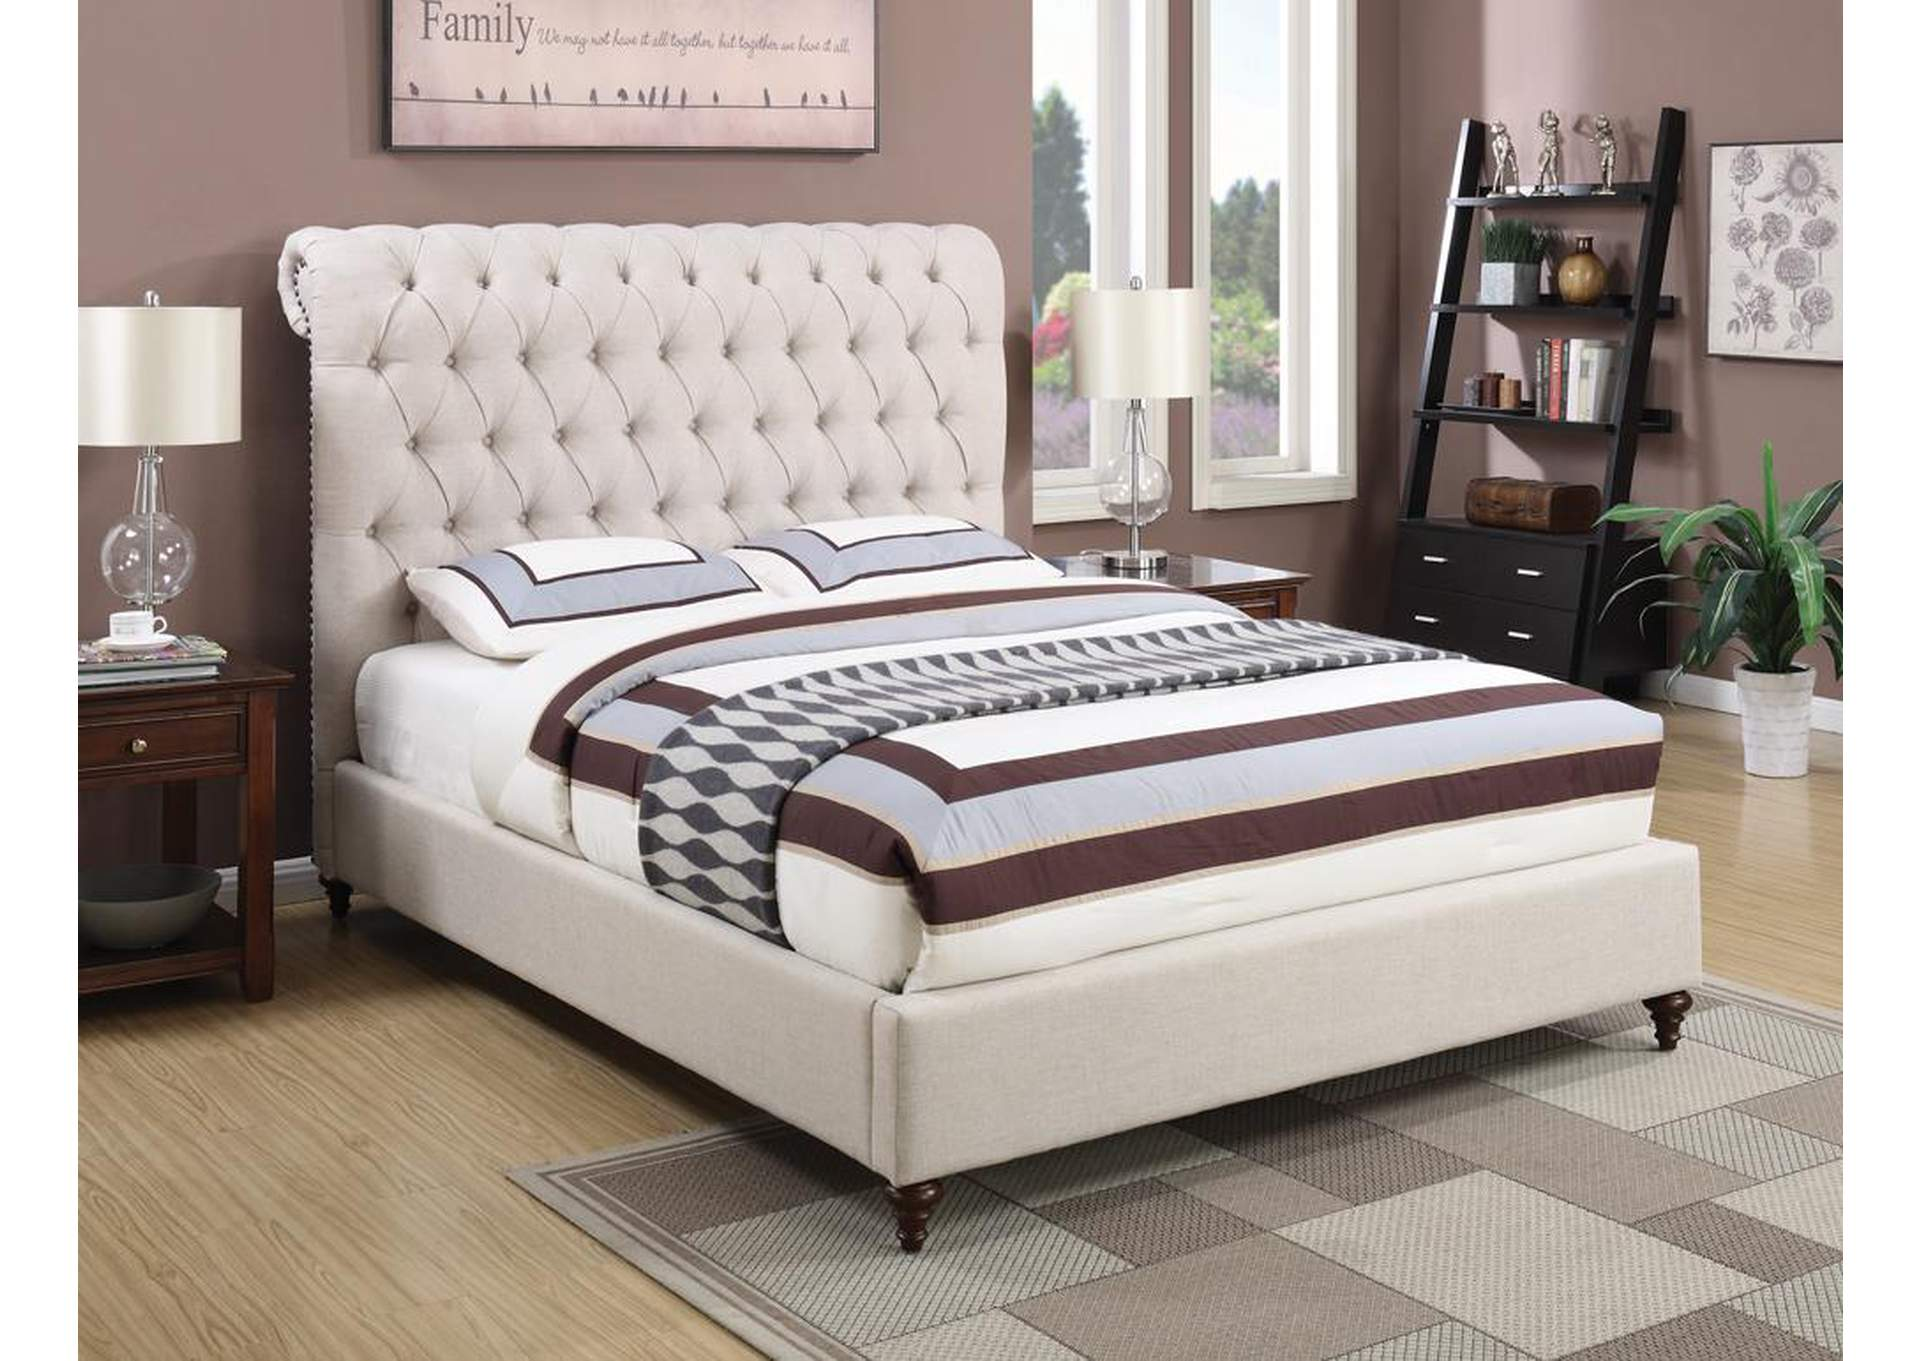 Devon Beige Queen Upholstered Sleigh Bed,Coaster Furniture